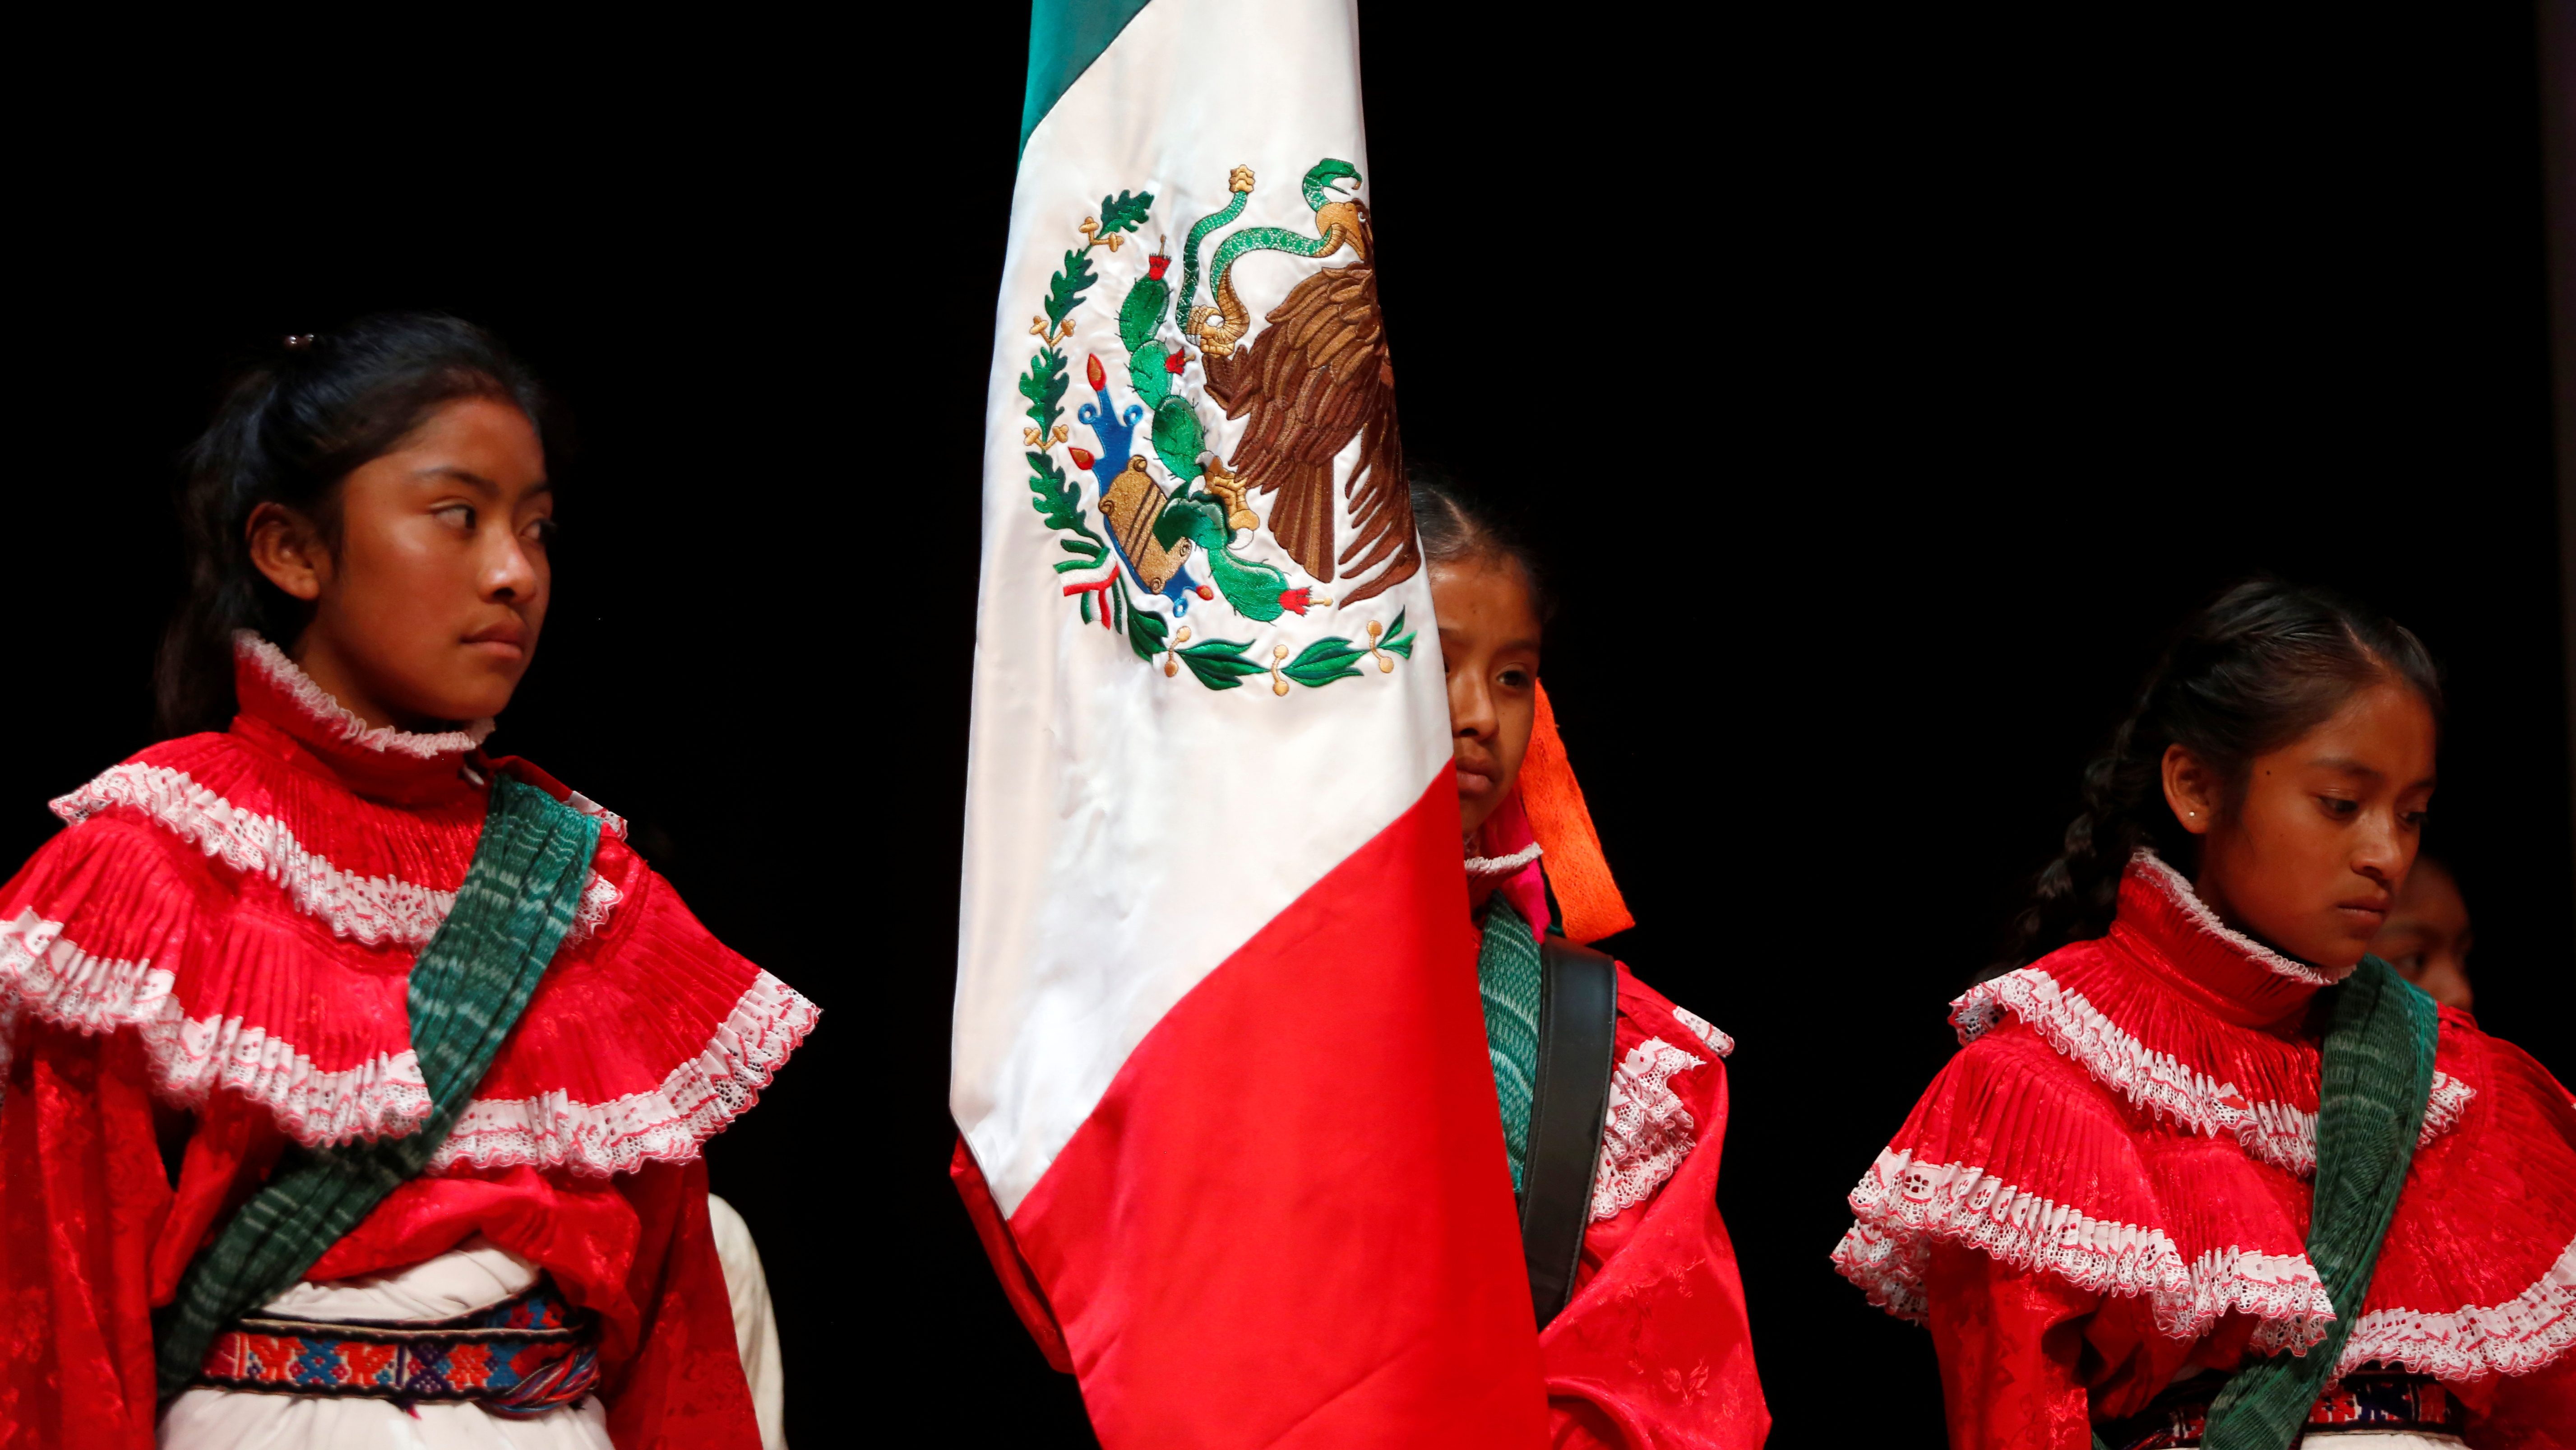 Indigenous children stand next the Mexican flag